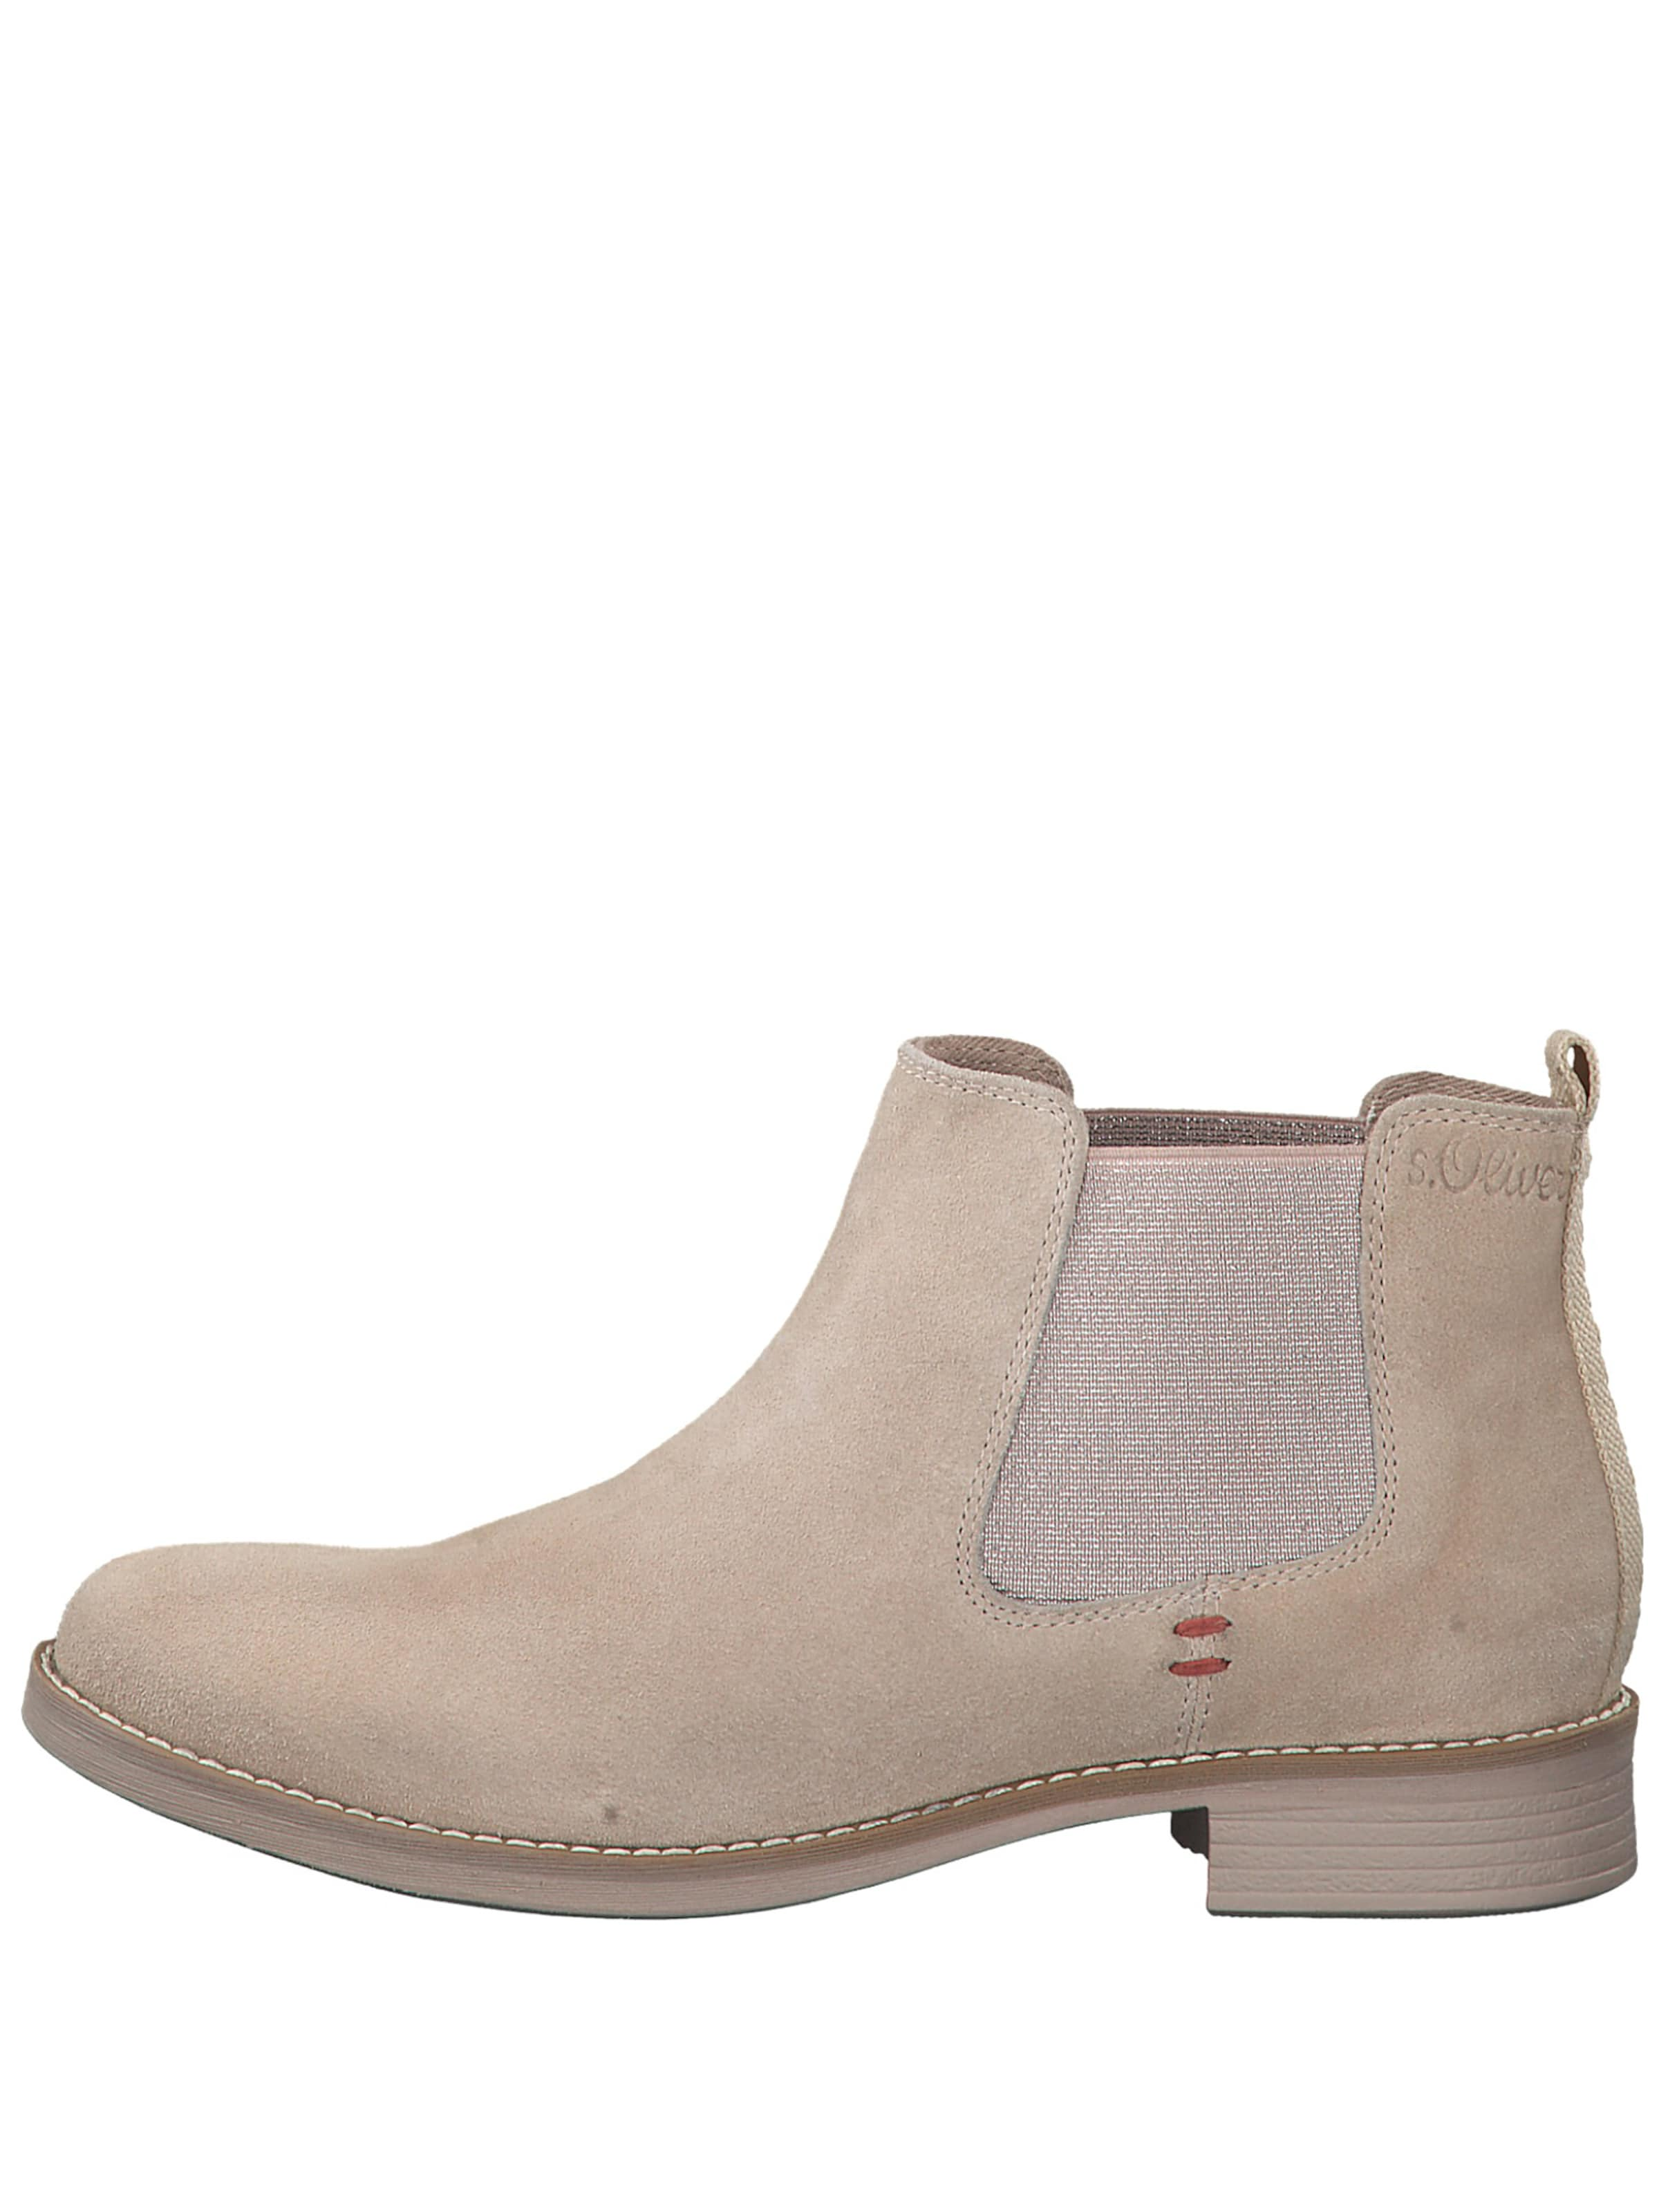 Stiefelette Label oliver S Red Rosa In AR53Lj4